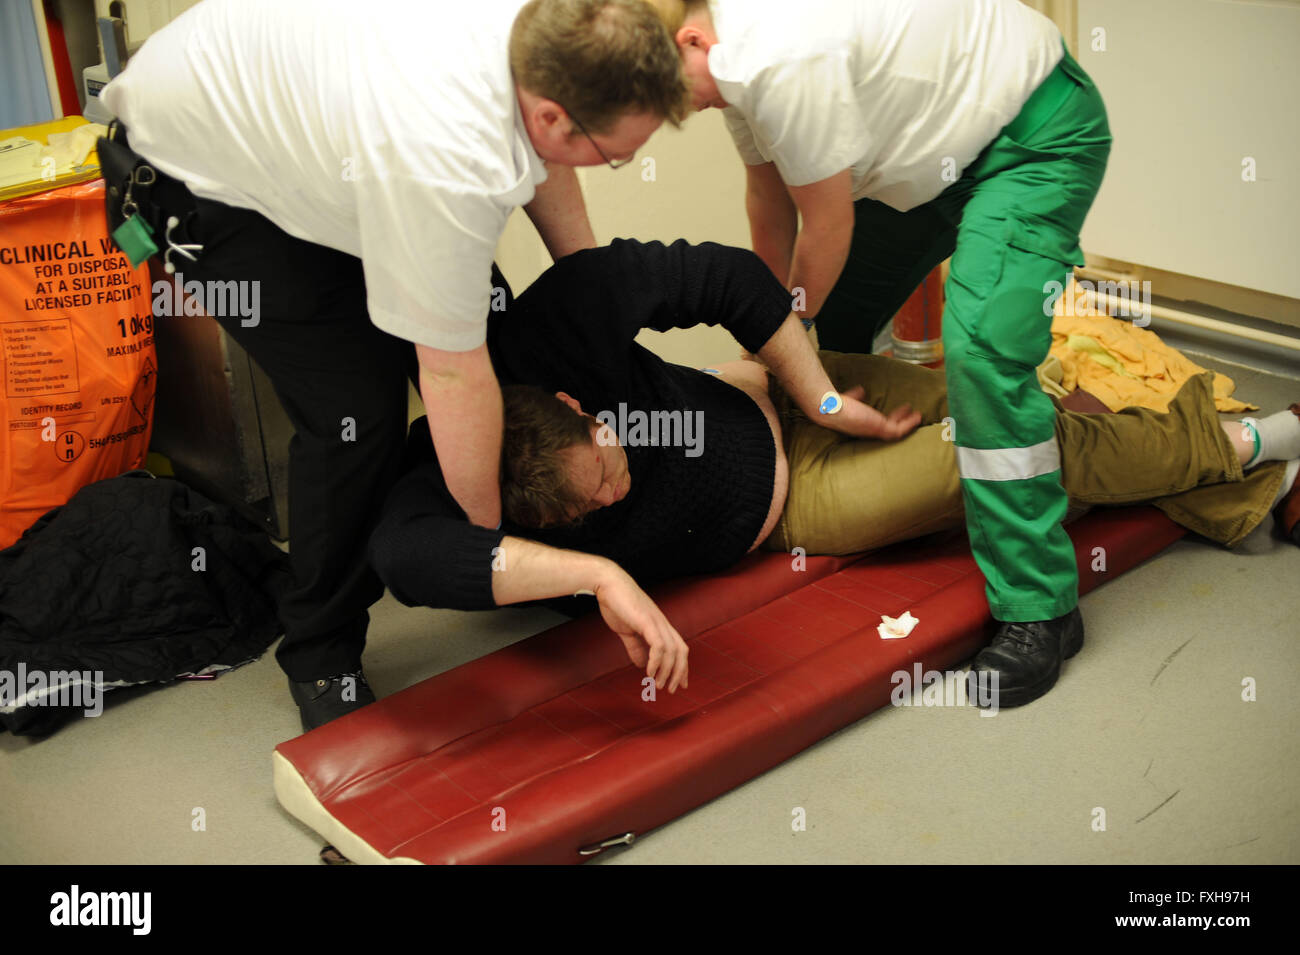 Paramedics provide first aid treatment to a drunken drunk man on black friday in Cardiff, South Wales. - Stock Image